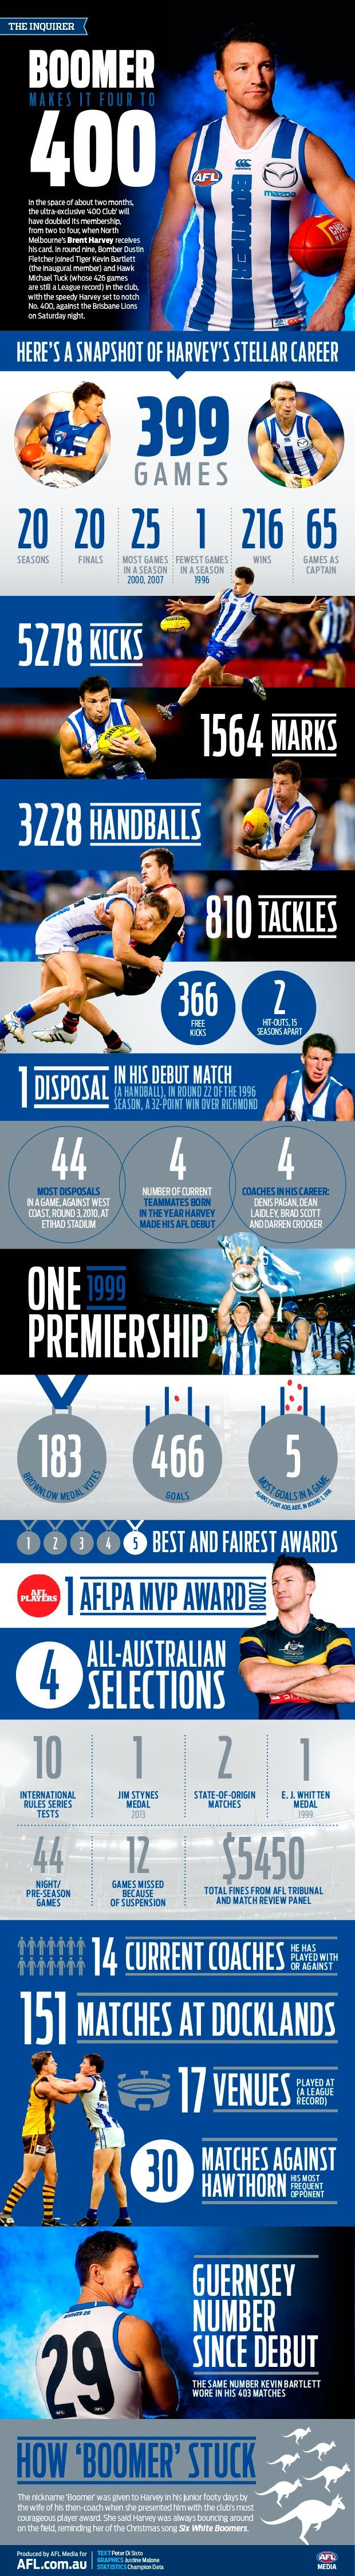 The Inquirer: Boomer by the numbers - AFL.com.au